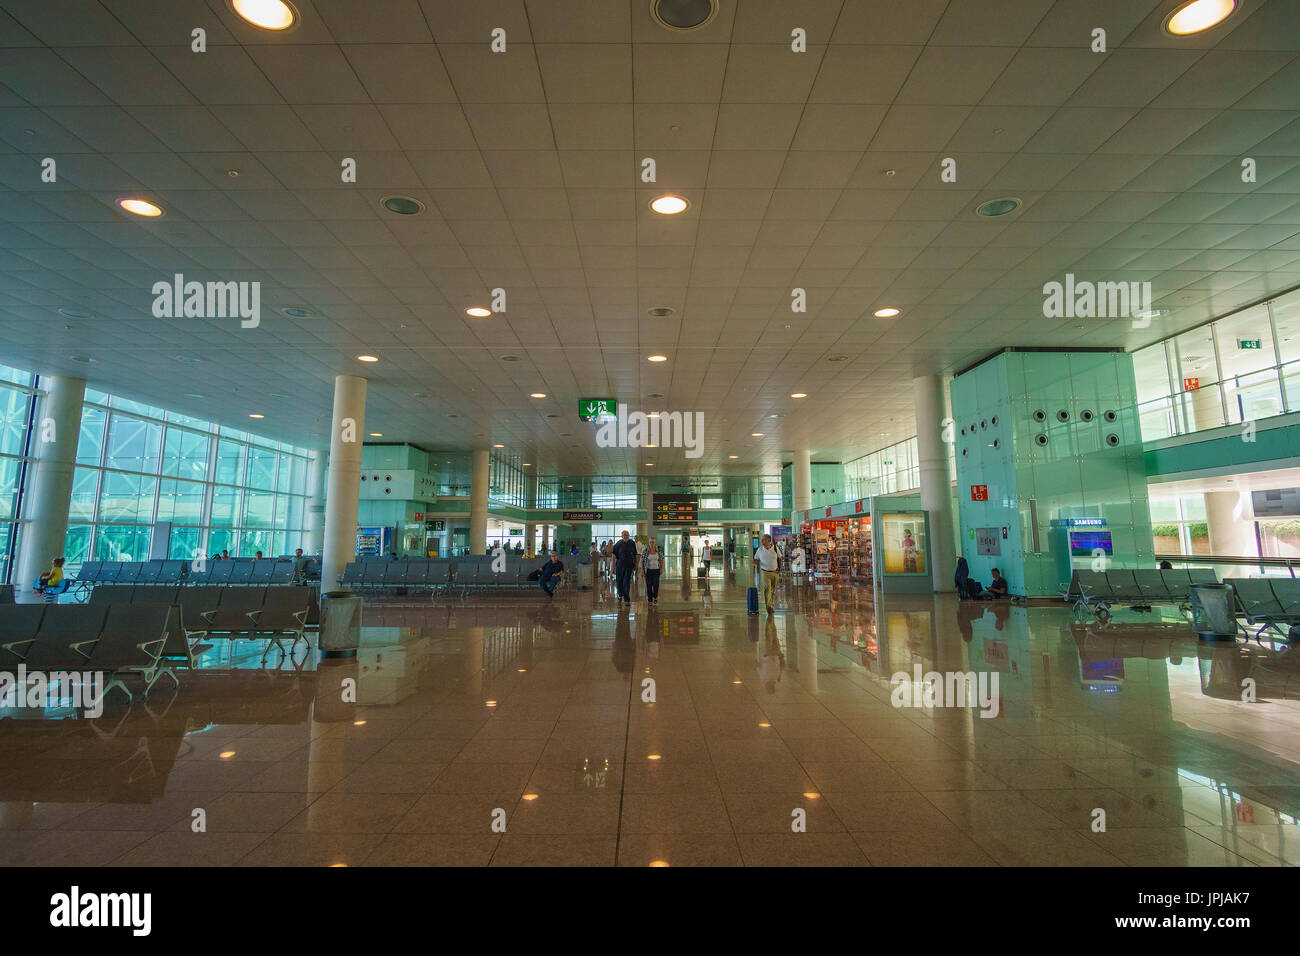 Barcelona El Prat Airport BCN. It is the main airport of Catalonia, the second largest and second busiest in Spain and the seventh busiest in Europe. - Stock Image